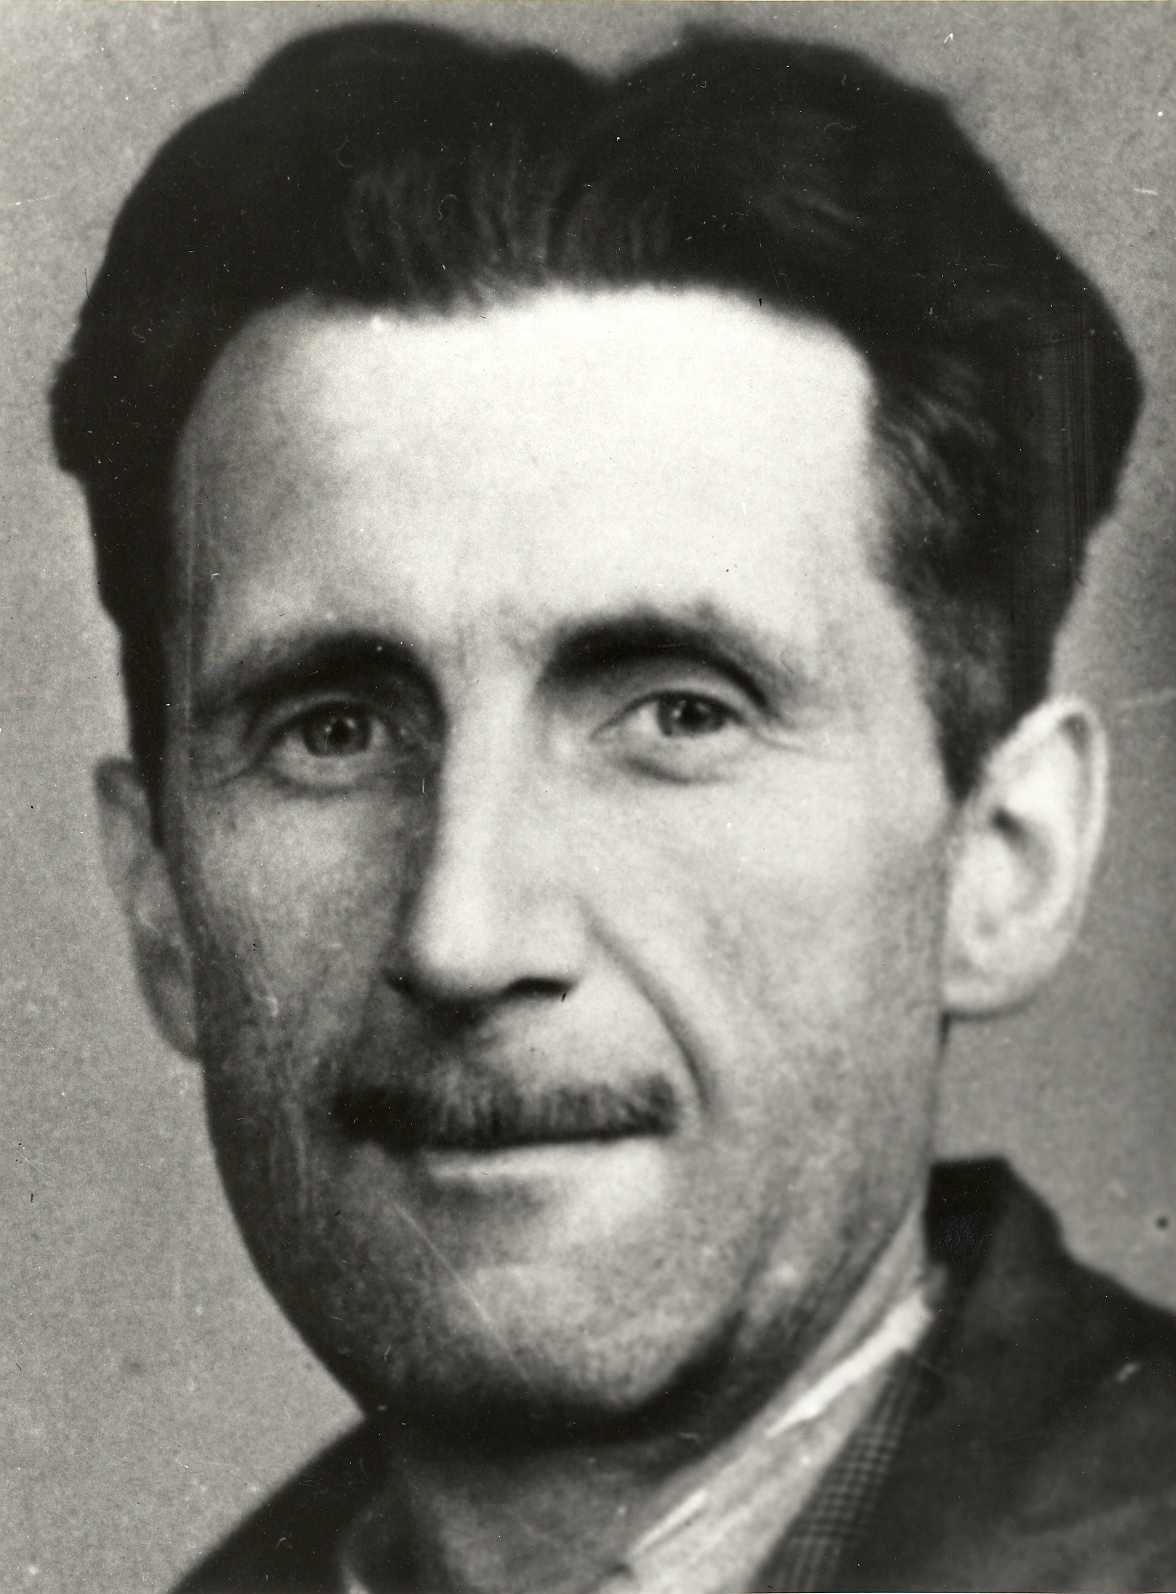 Portrait of George Orwell